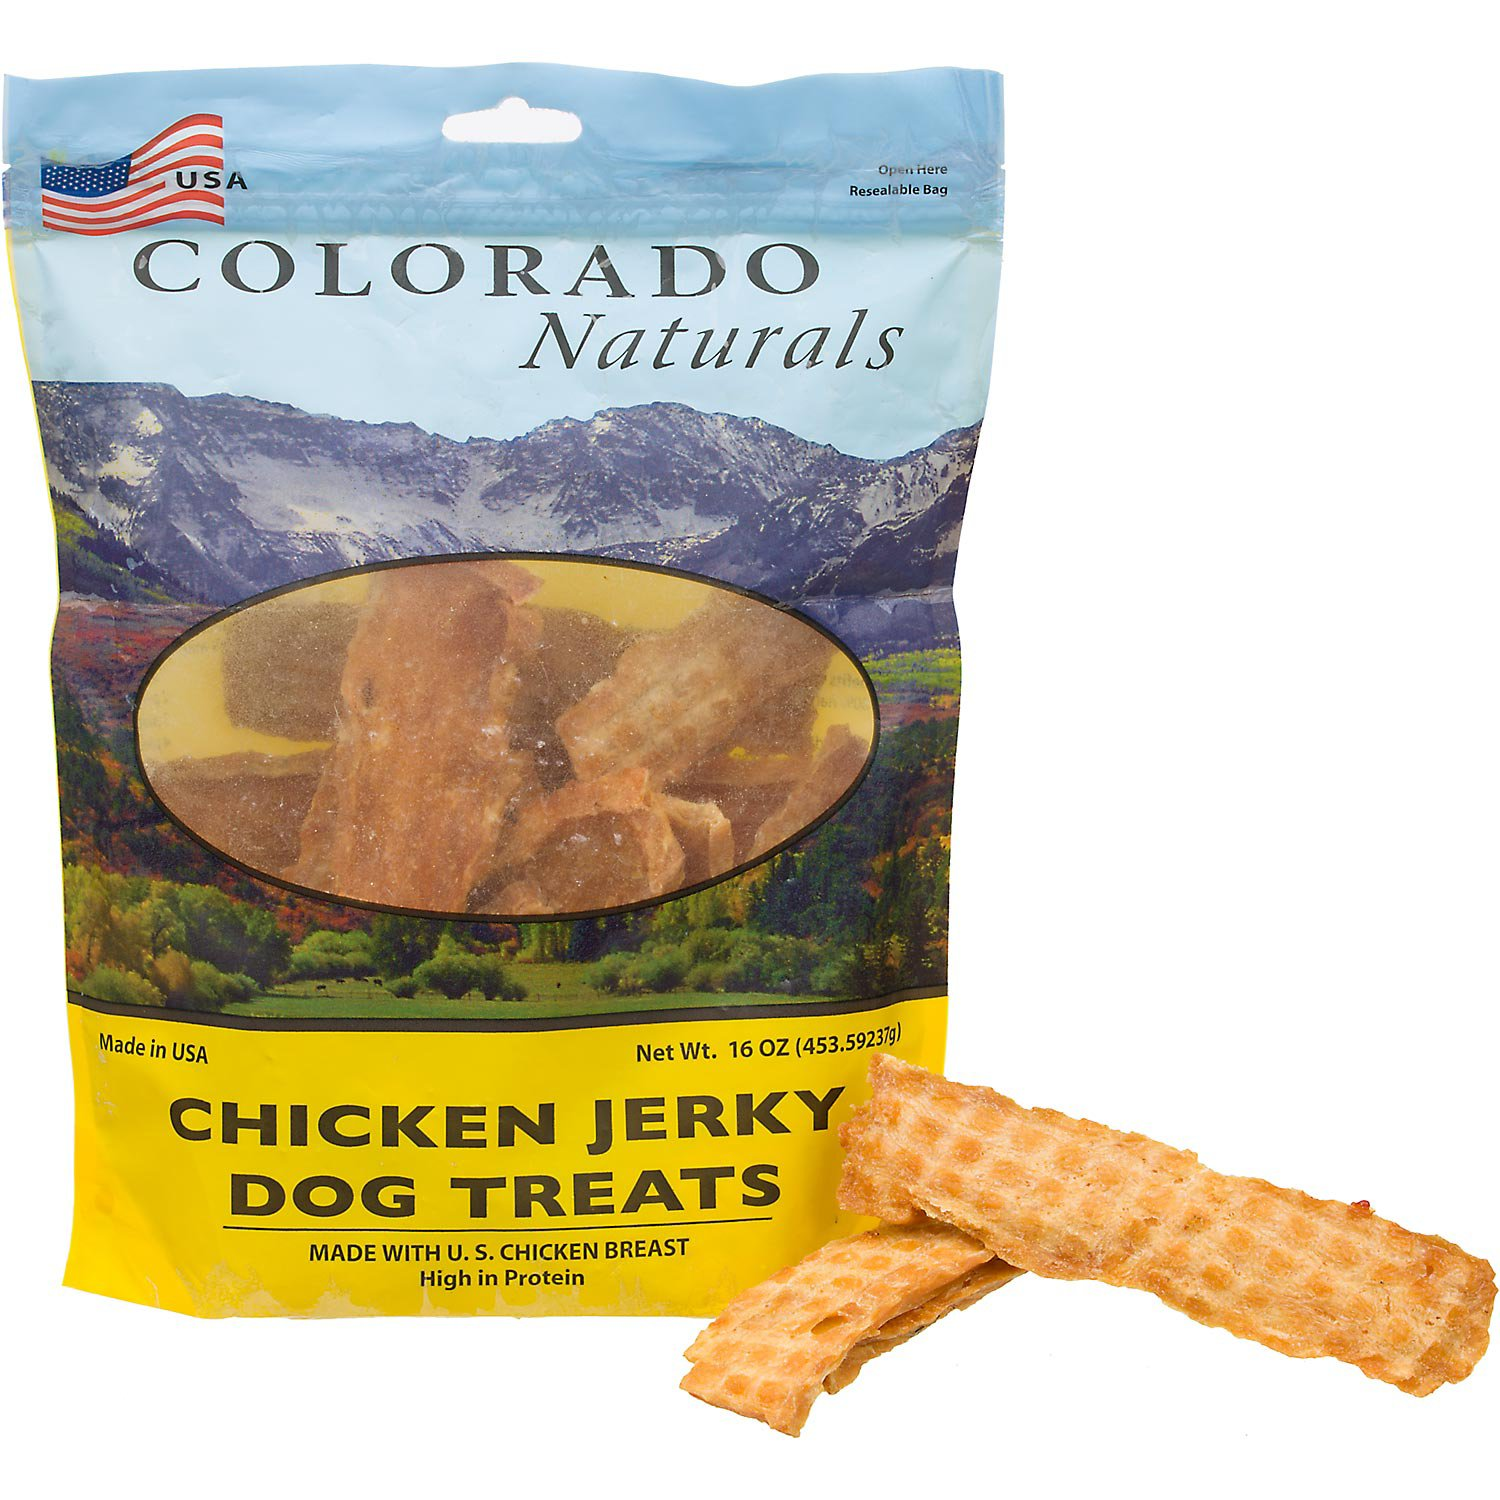 Colorado Naturals Jerky Dog Treats